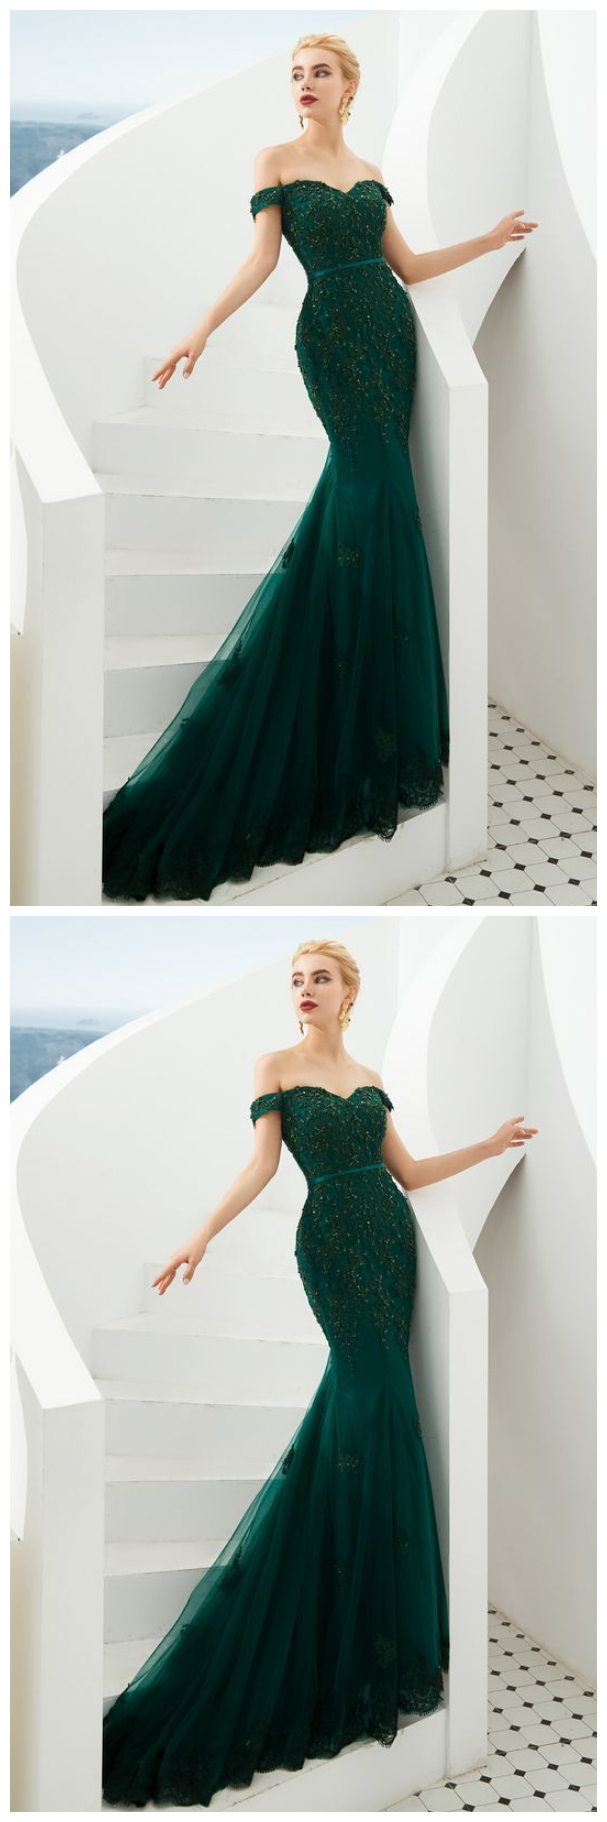 mermaid hunter green evening dress with off the shoulder prom dress